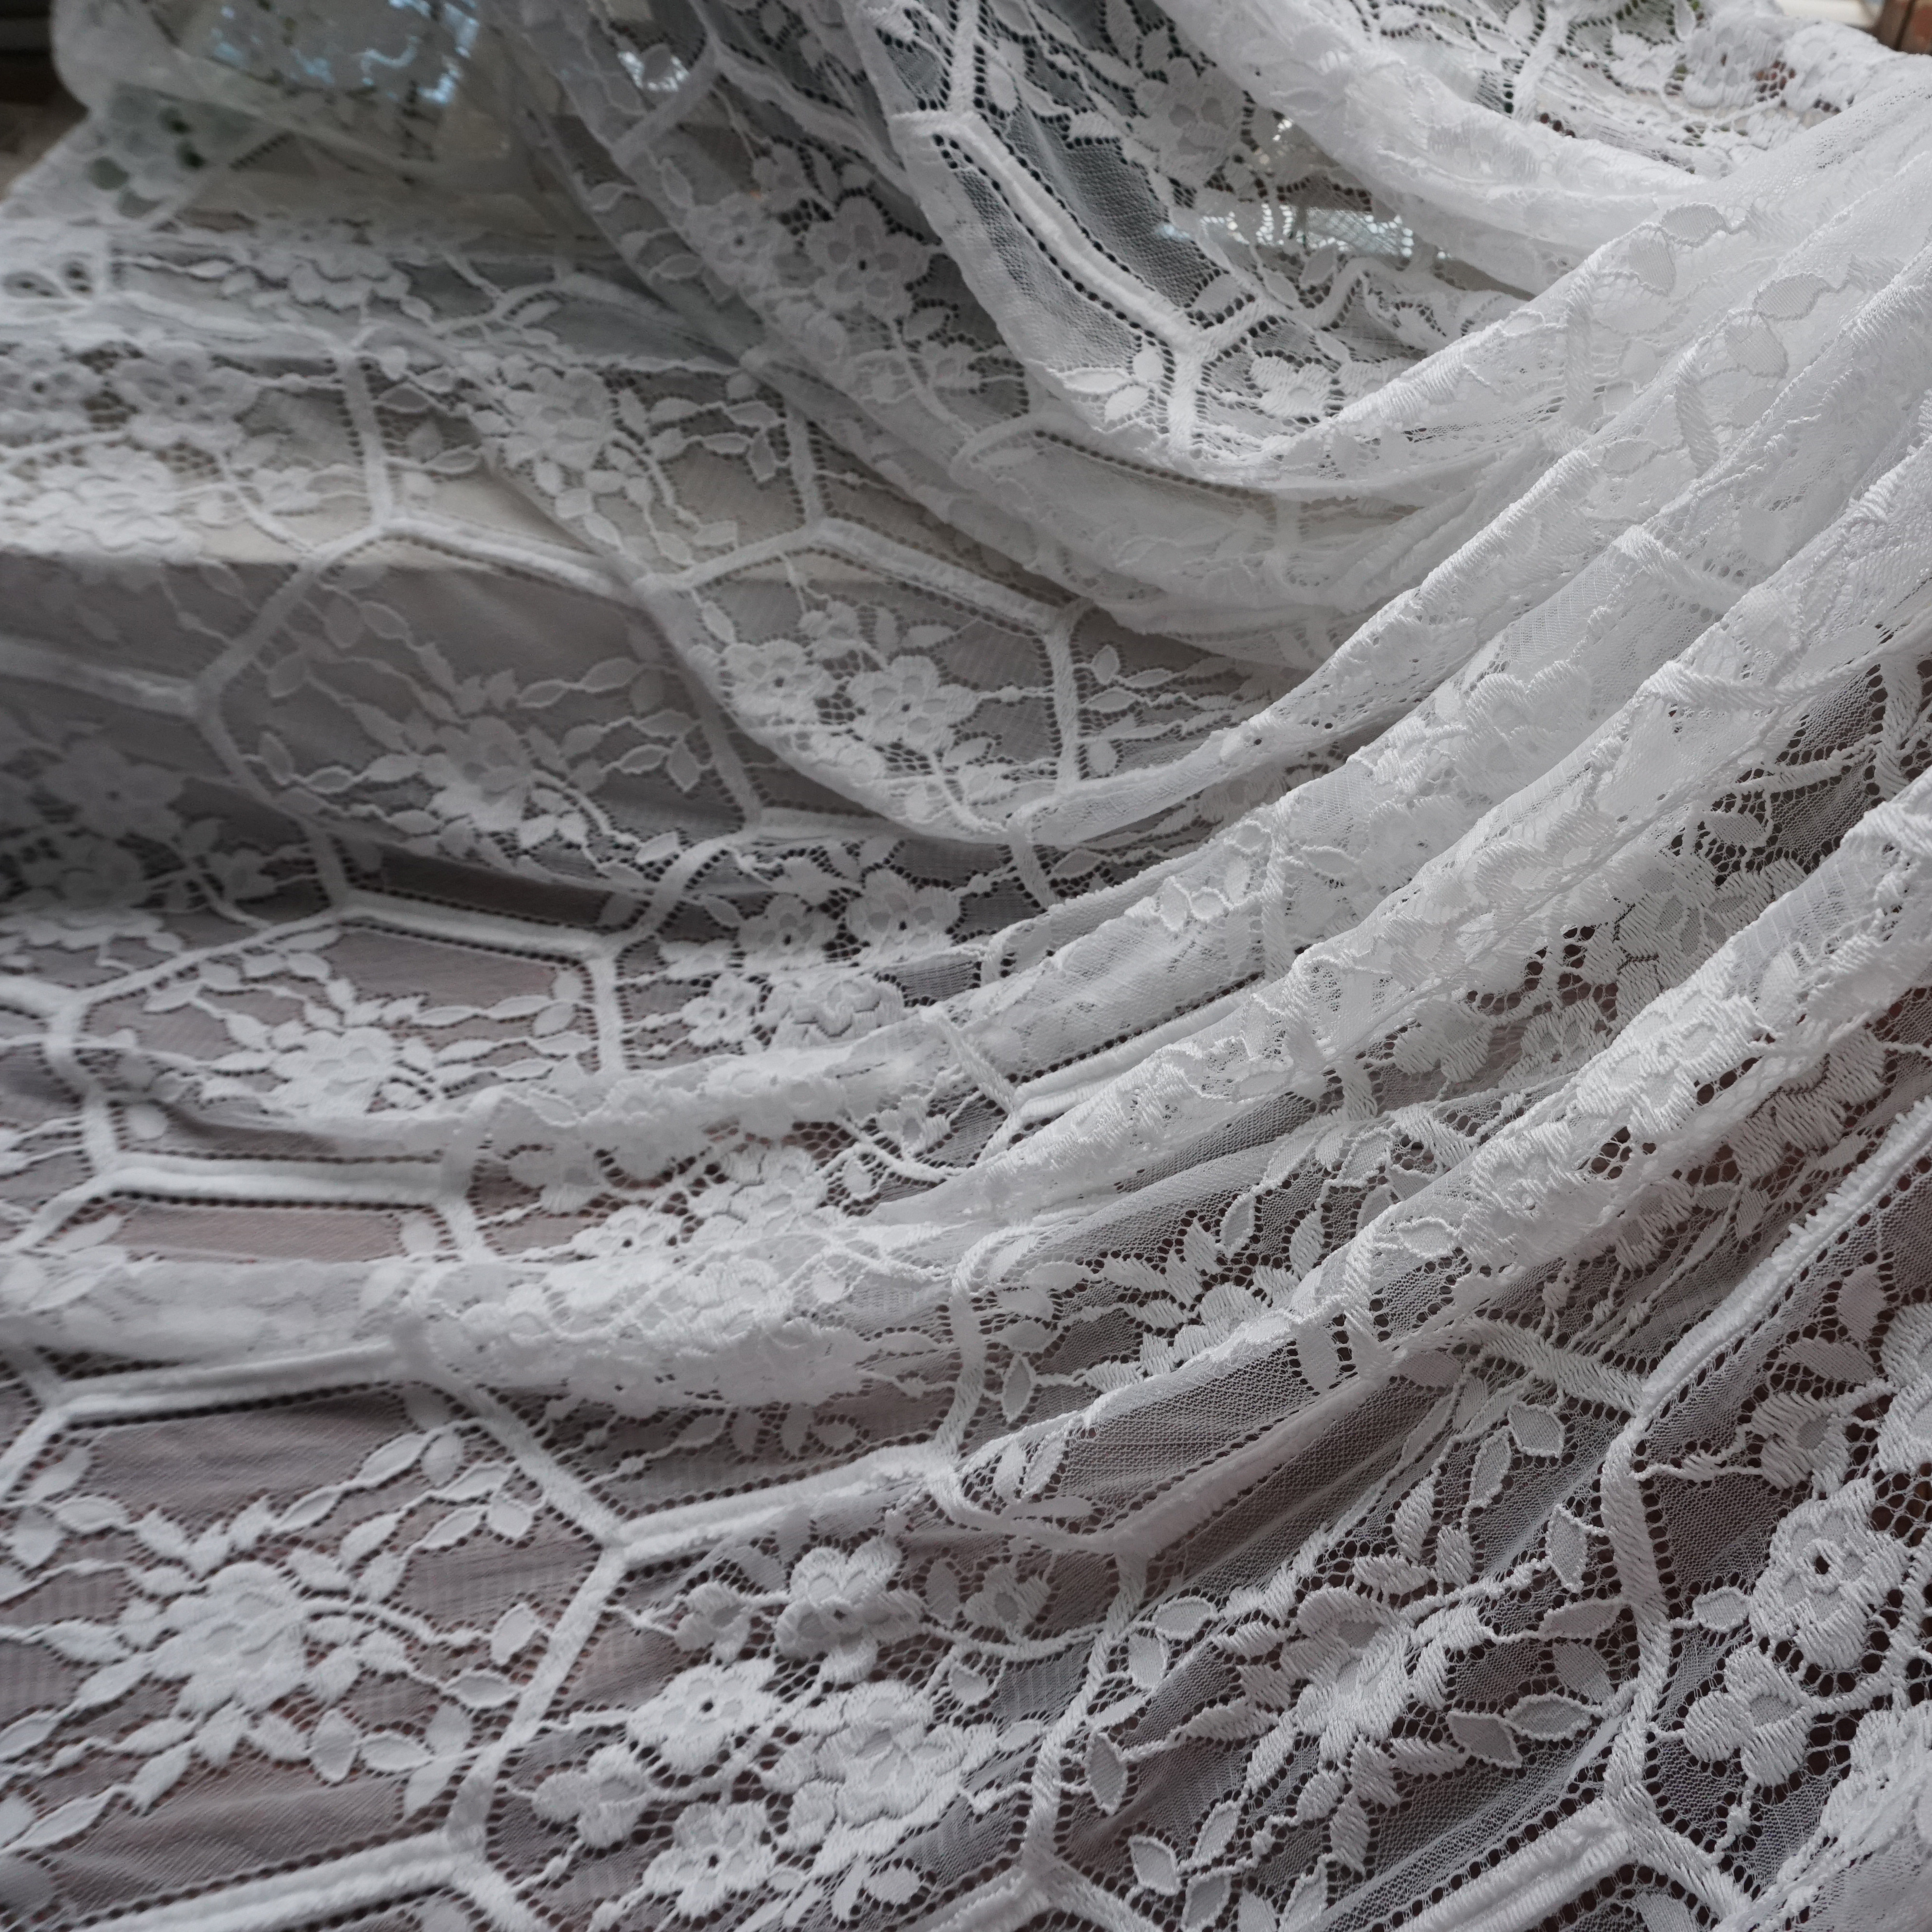 2019 Popular hot design soft eyelash french lace for wedding gowns 2D Top Quality Lucy Lace Boutique 1 piece 1 5x3 meters in Lace from Home Garden